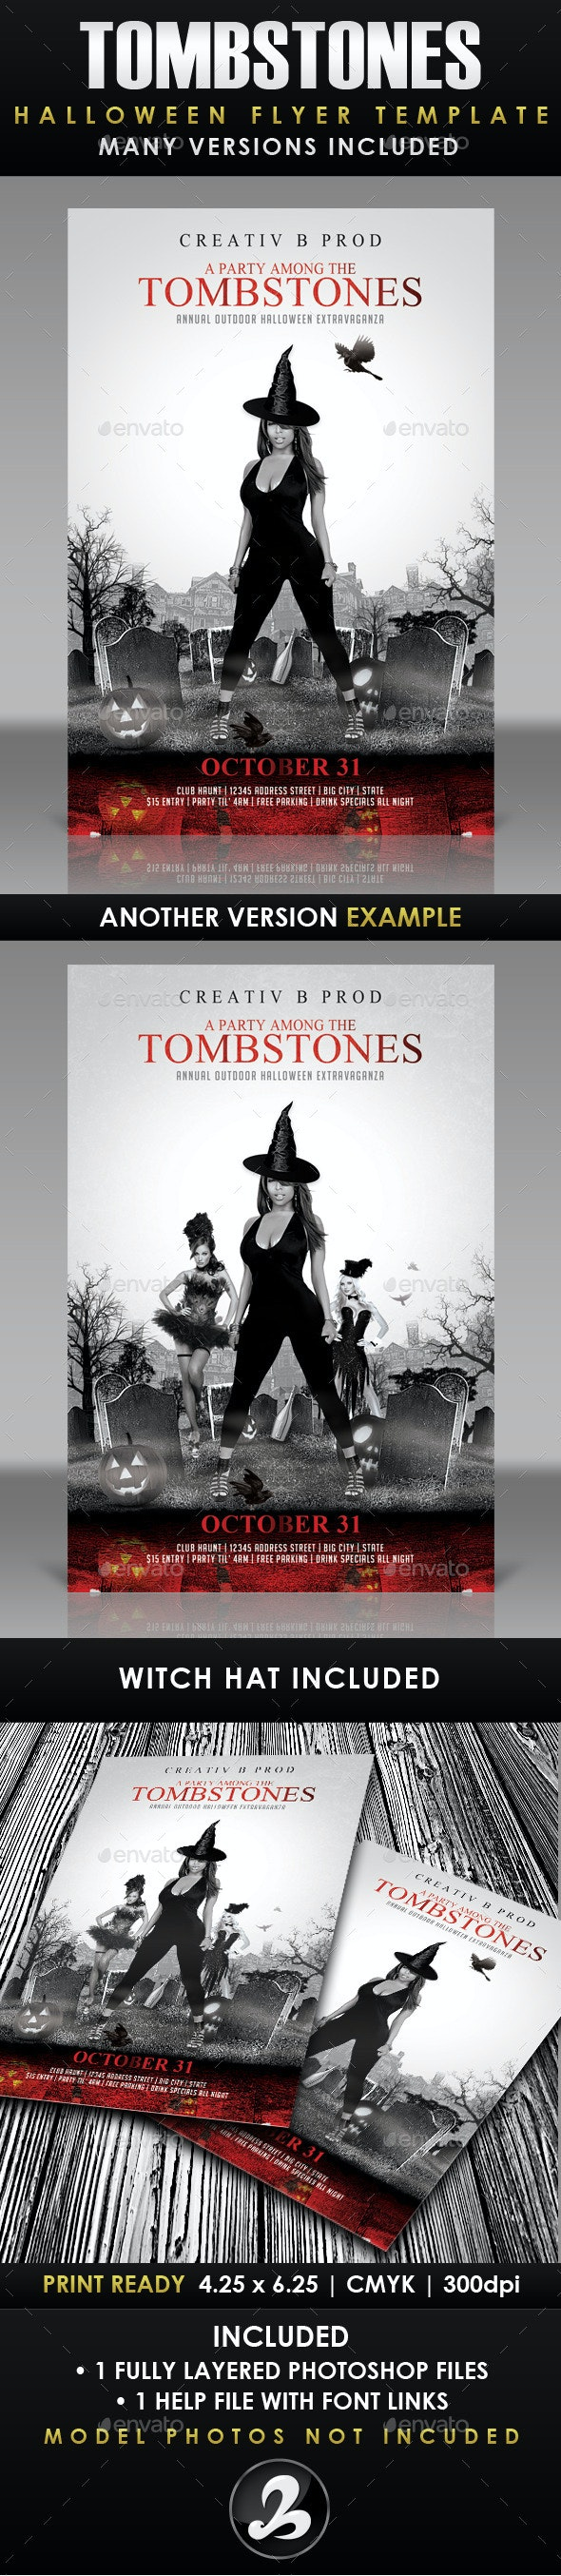 A Party Among Tombstones Halloween Flyer Template - Events Flyers